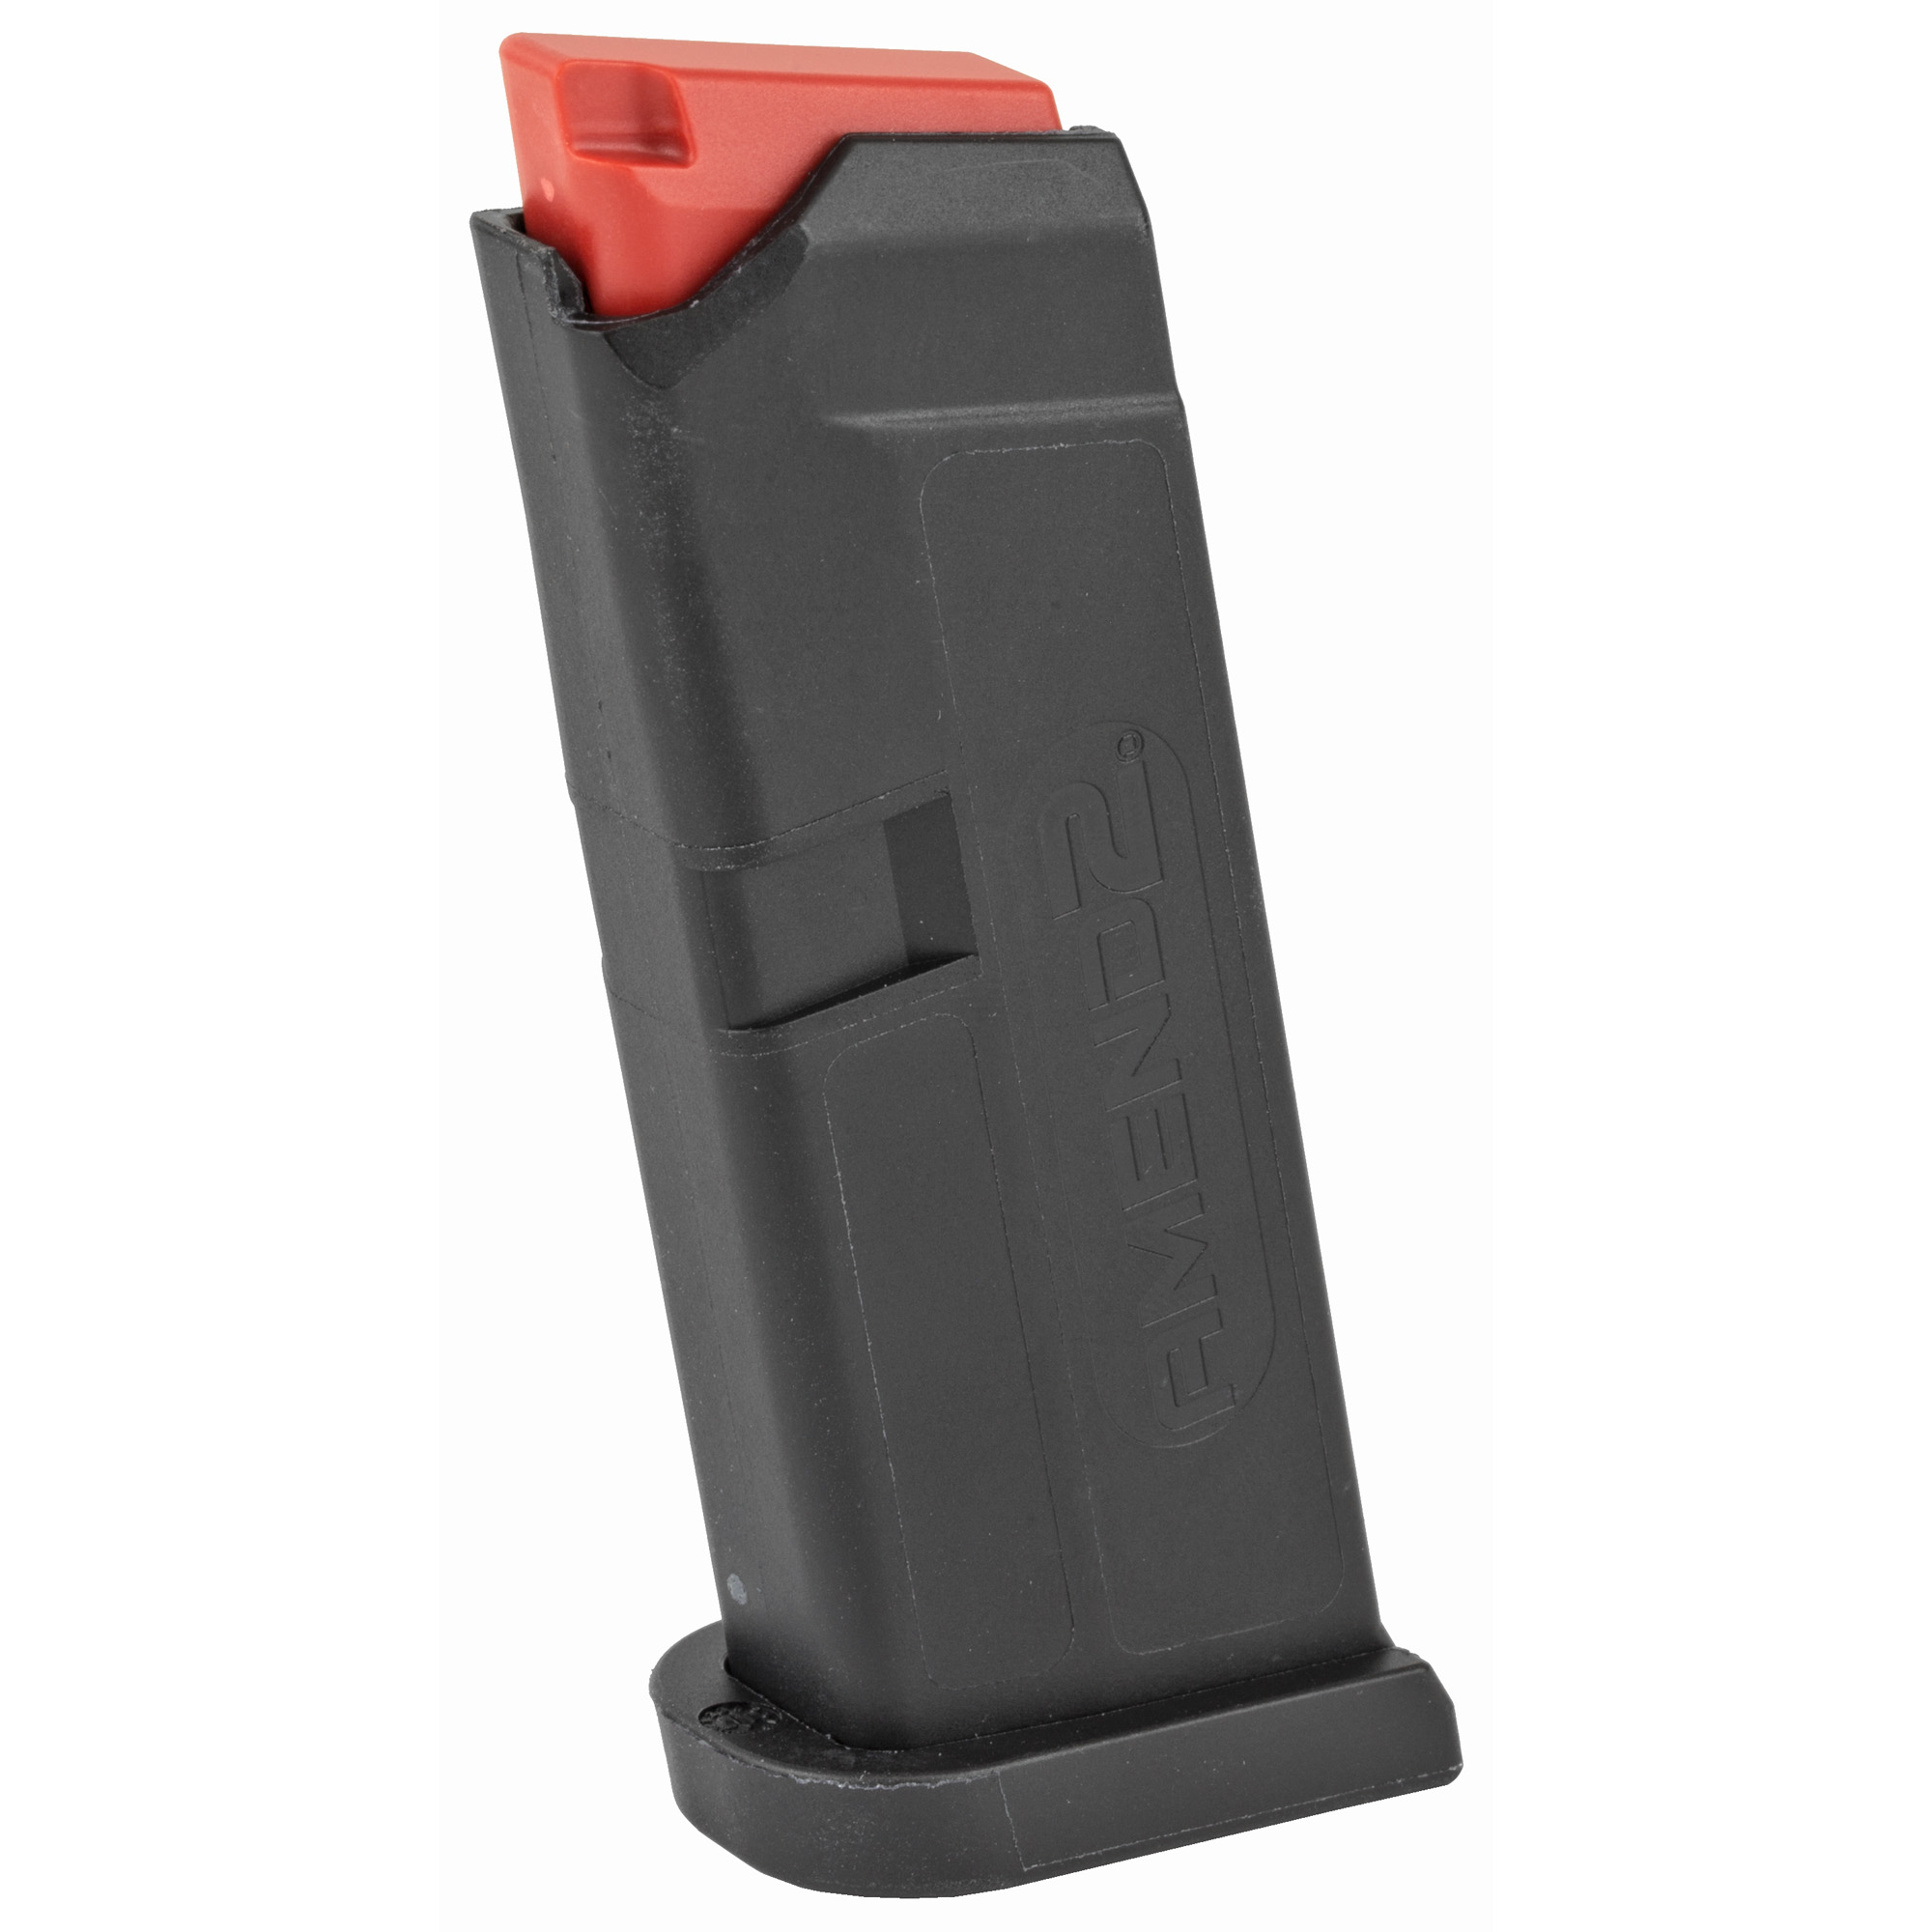 """This Amend2 6-round magazine is designed for use in the GLOCK 42 and is a sturdy"""" reliable .380 AUTO magazine made of advanced polymer material. It is a light"""" durable and excellent alternative to the standard GLOCK OEM magazine."""